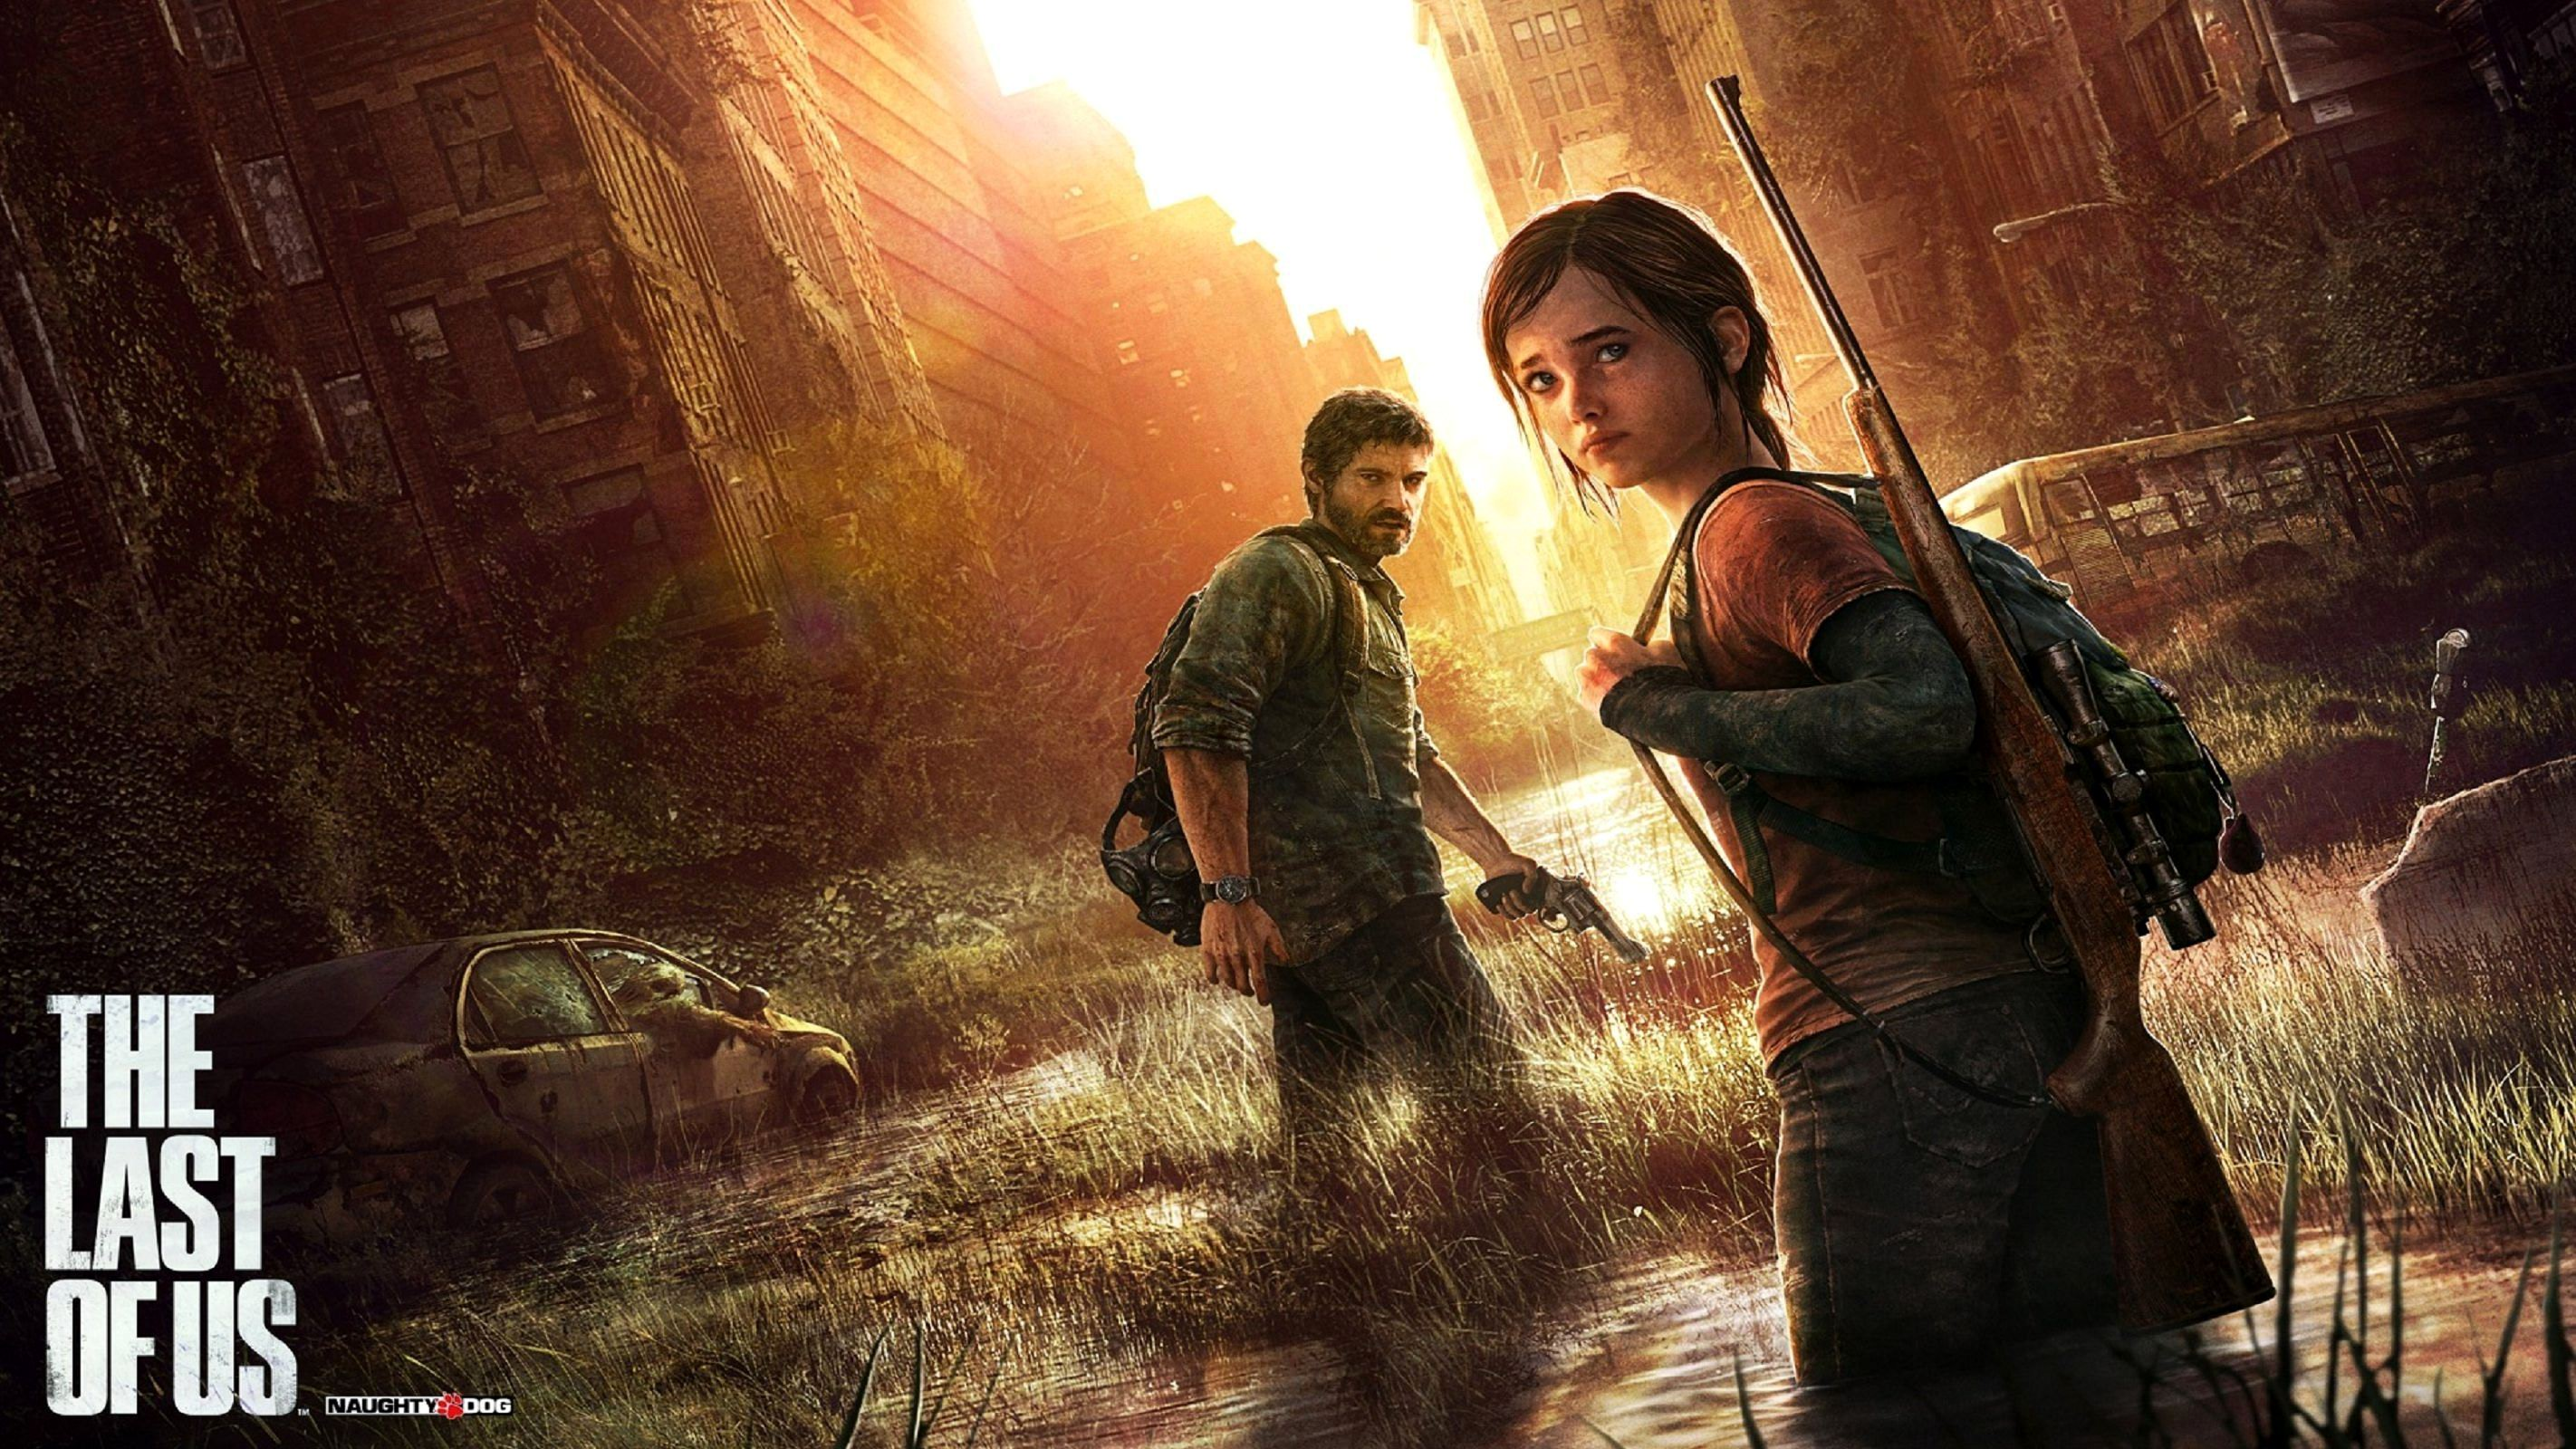 The Last Of Us - Fonds d'écran